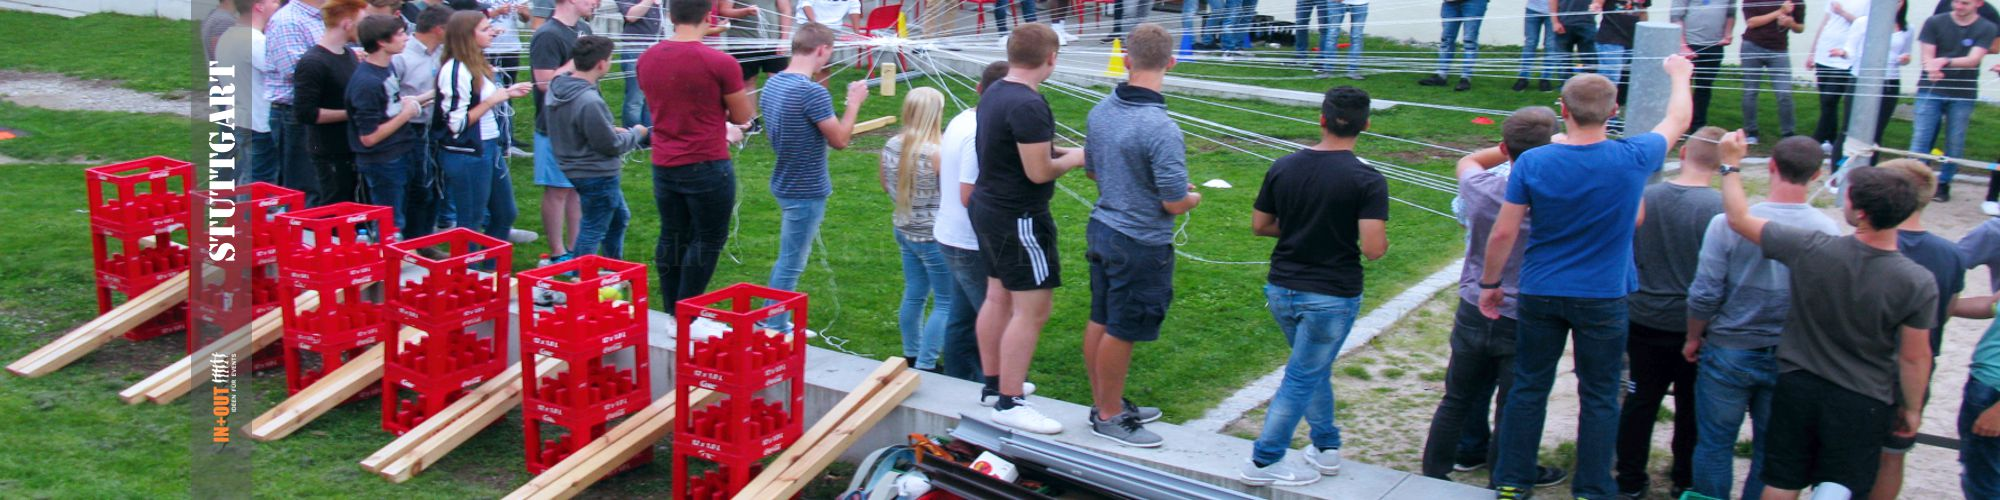 Tischkicker bauen - IN+OUT TEAM EVENTS